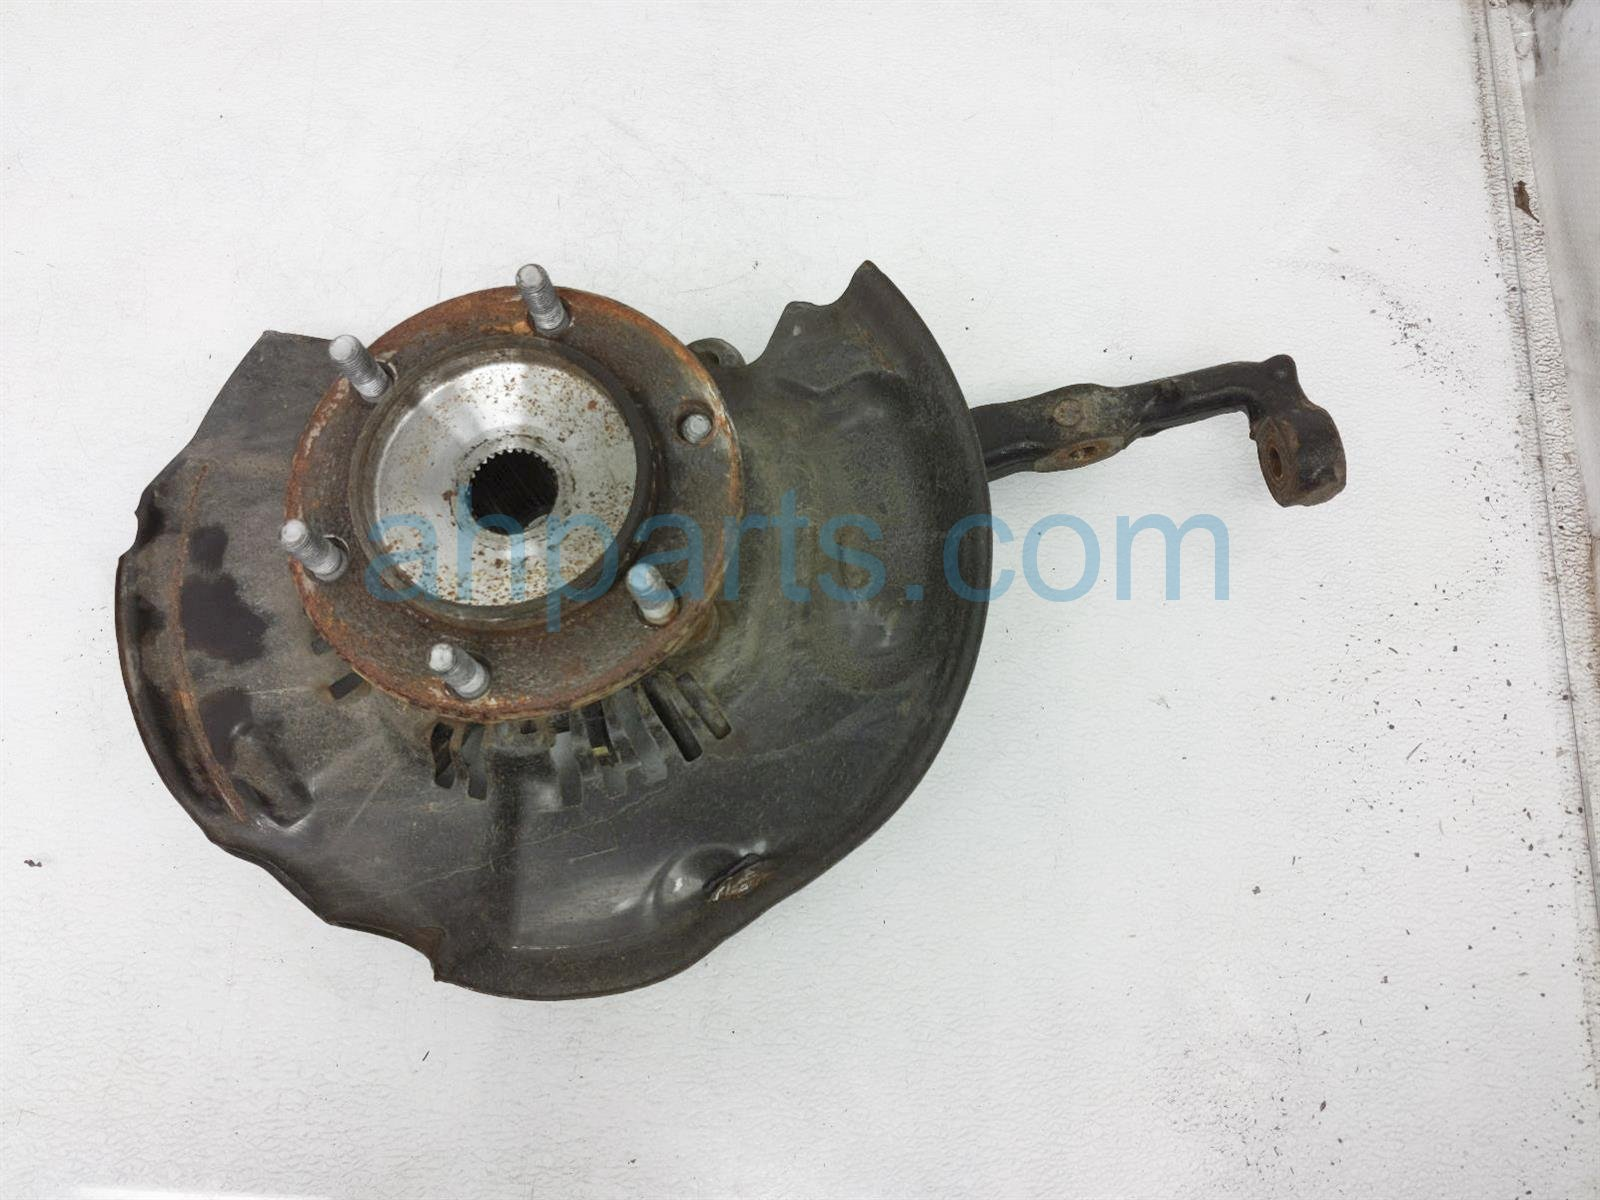 2017 Toyota Tacoma Front Passenger Spindle Knuckle Hub 43211 04060 Replacement